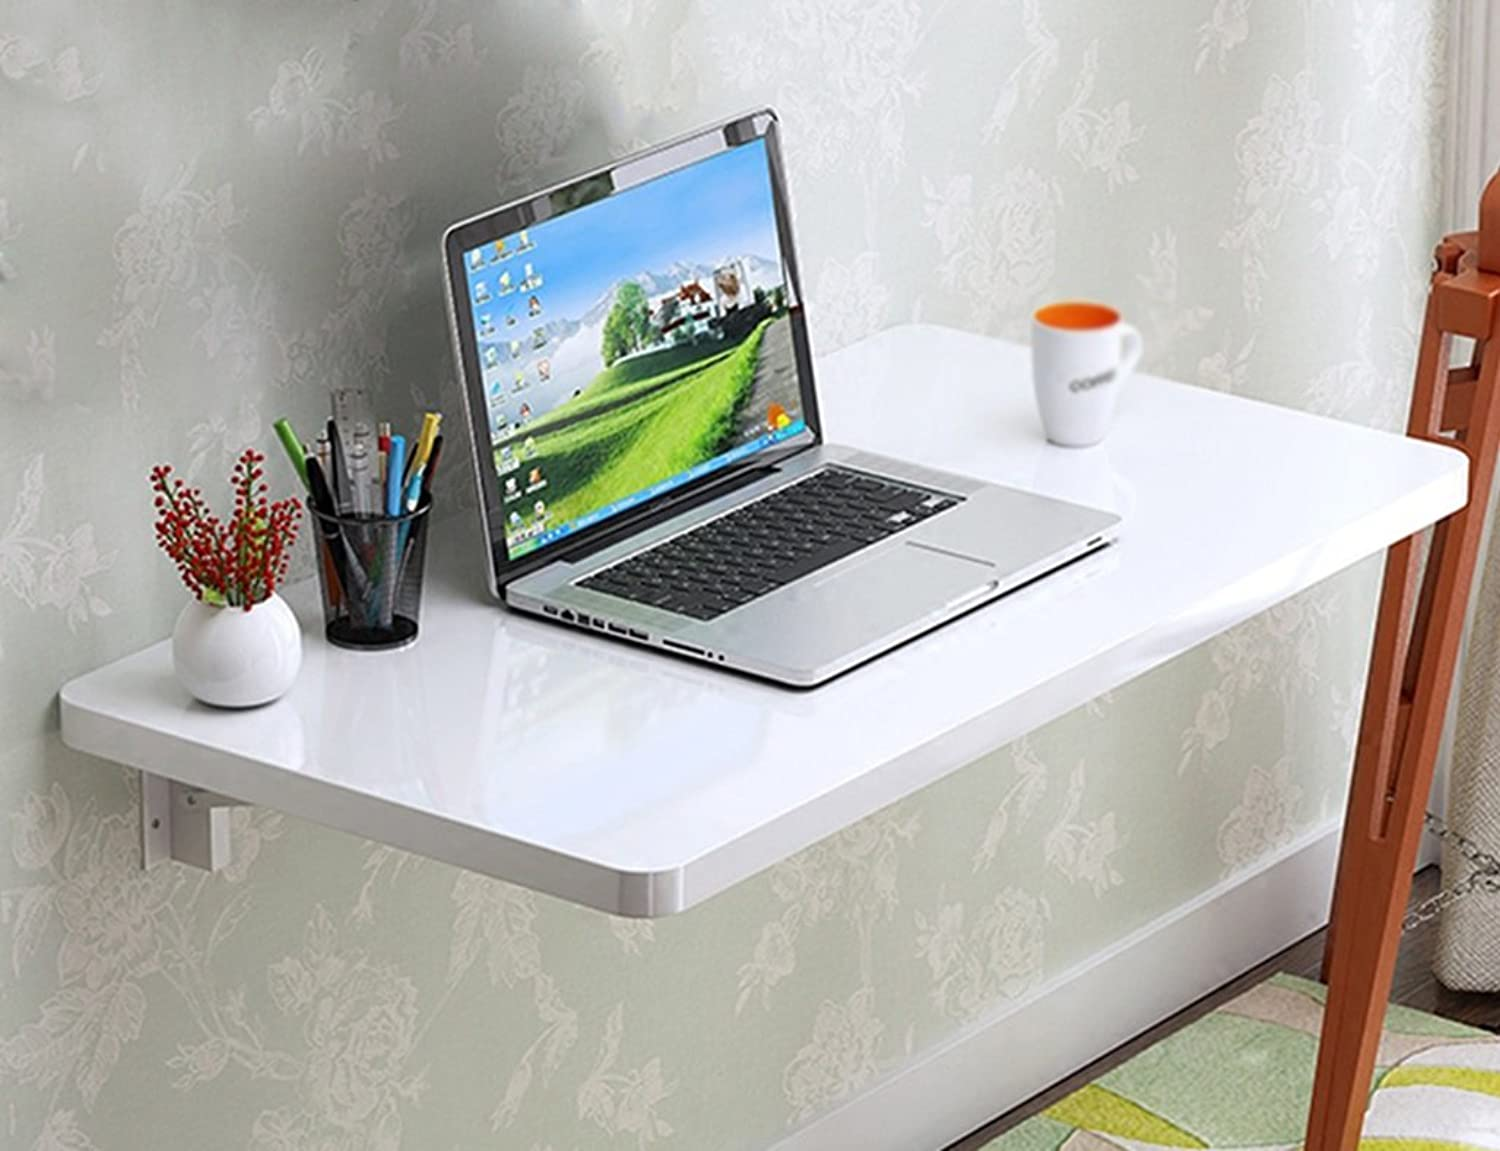 Djyyh Wall Table Folding Table Dining Table Computer Desk Desk Learning Work Home White (color   White, Size   60  40 cm)